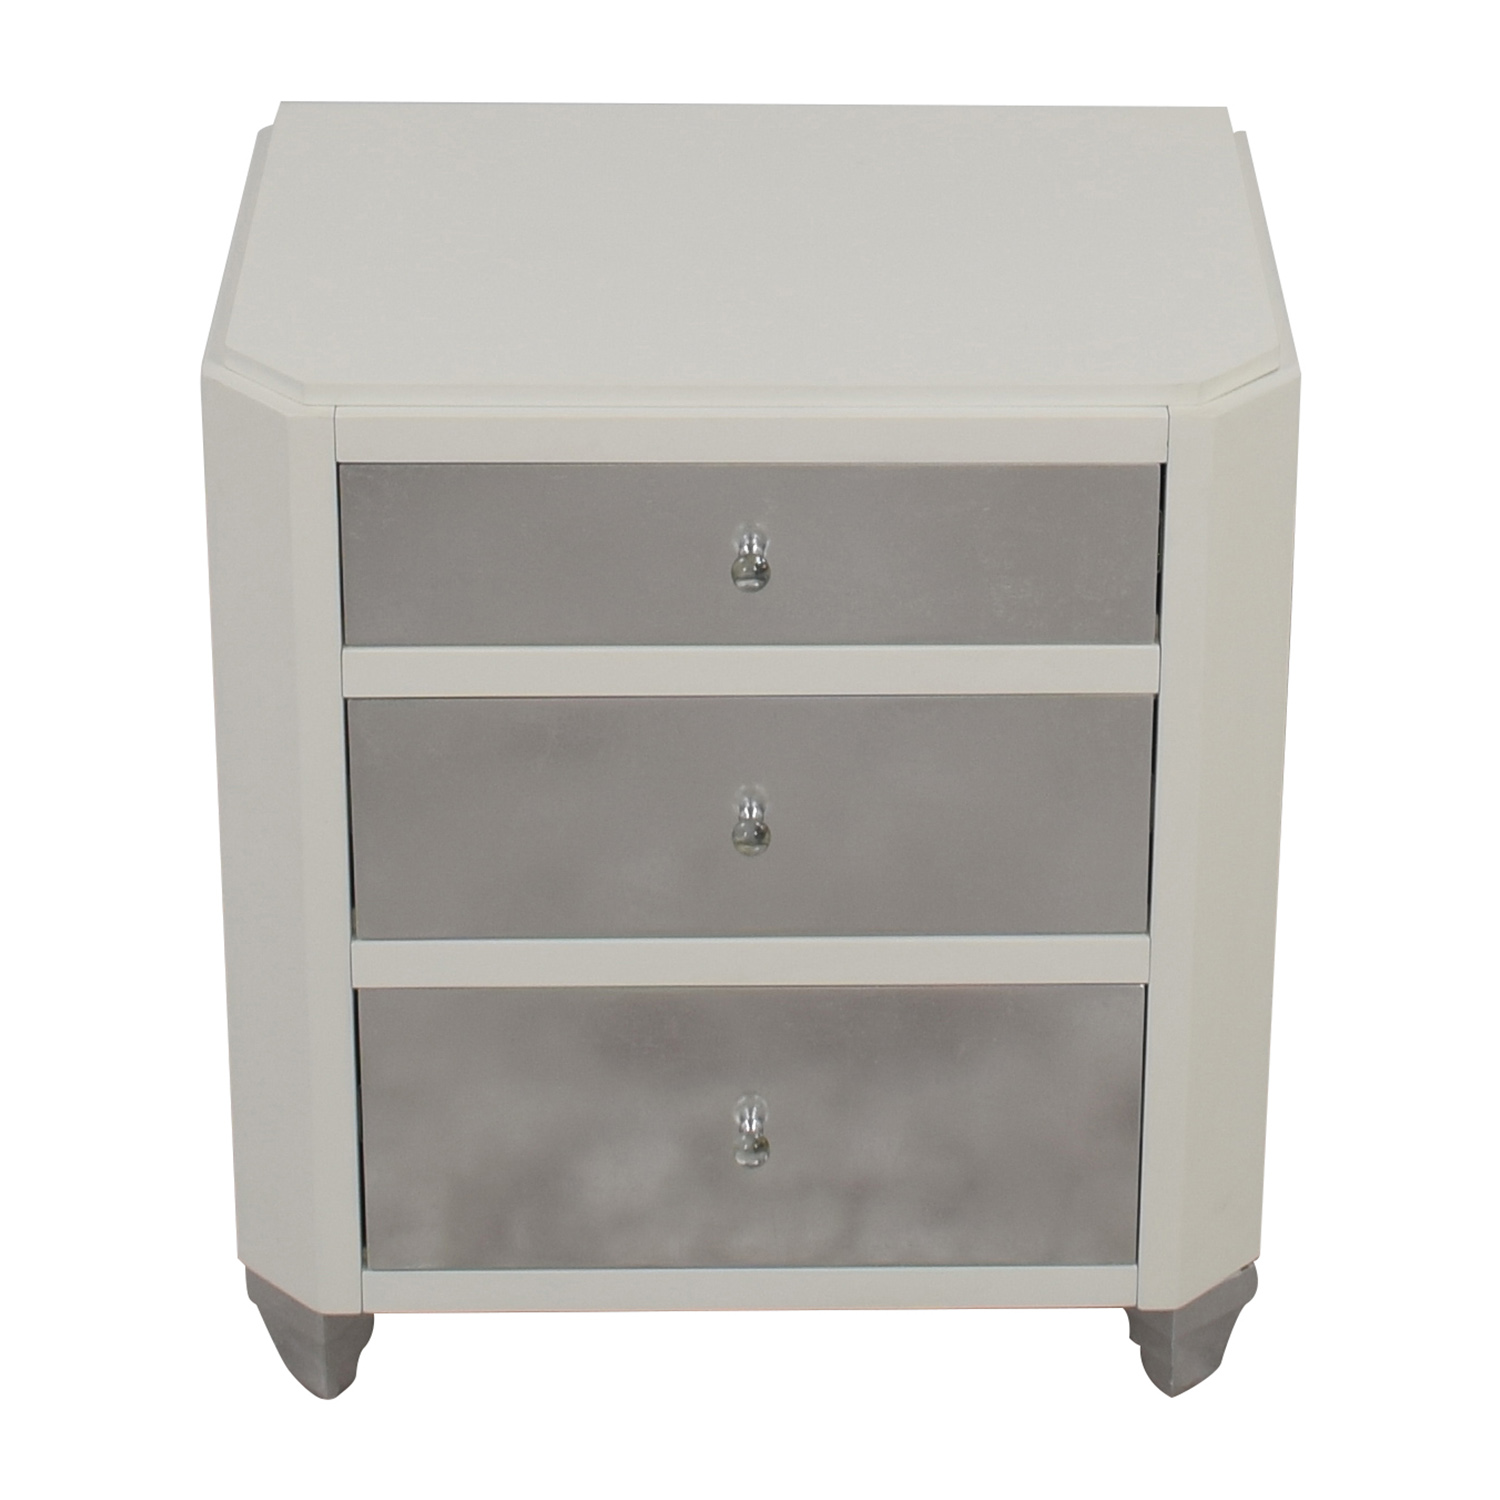 Bungalow 5 Bungalow 5 Mame Three-Drawer Side Table used